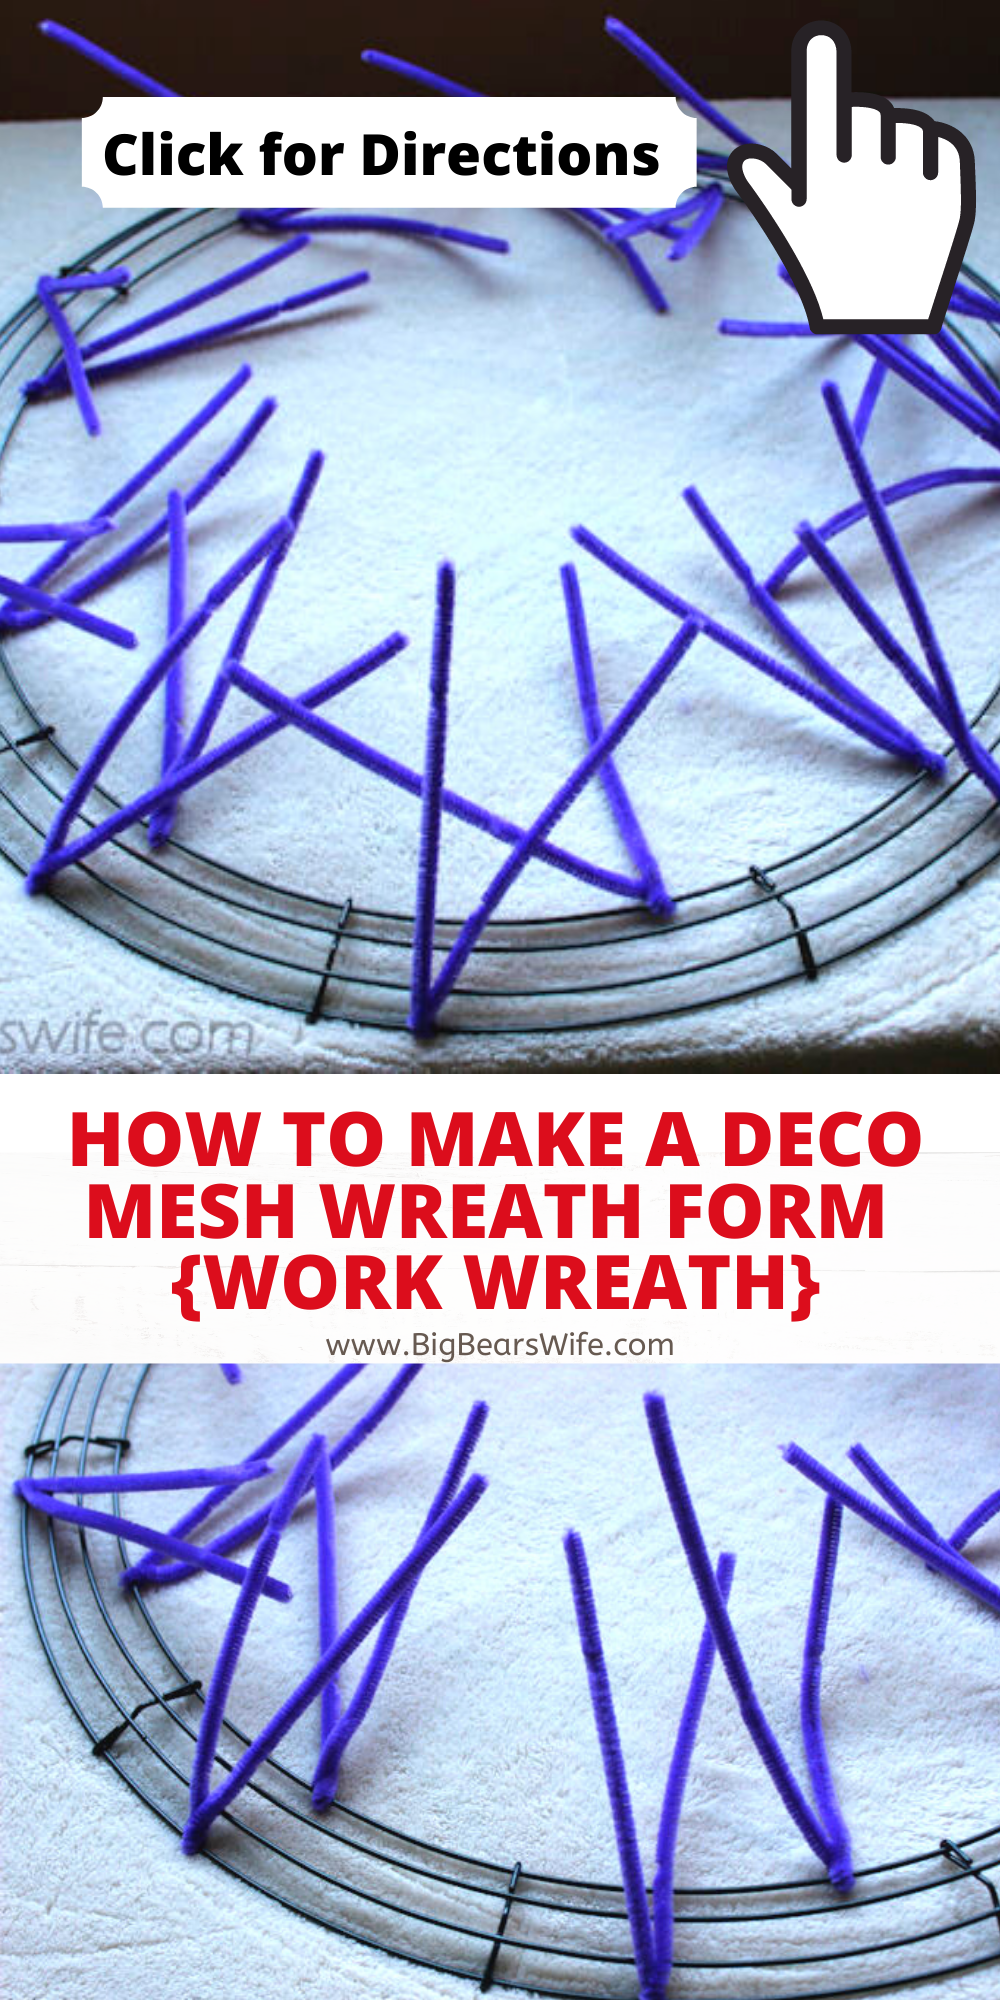 How To Make A Deco Mesh Wreath Form Work Wreath Big Bear S Wife